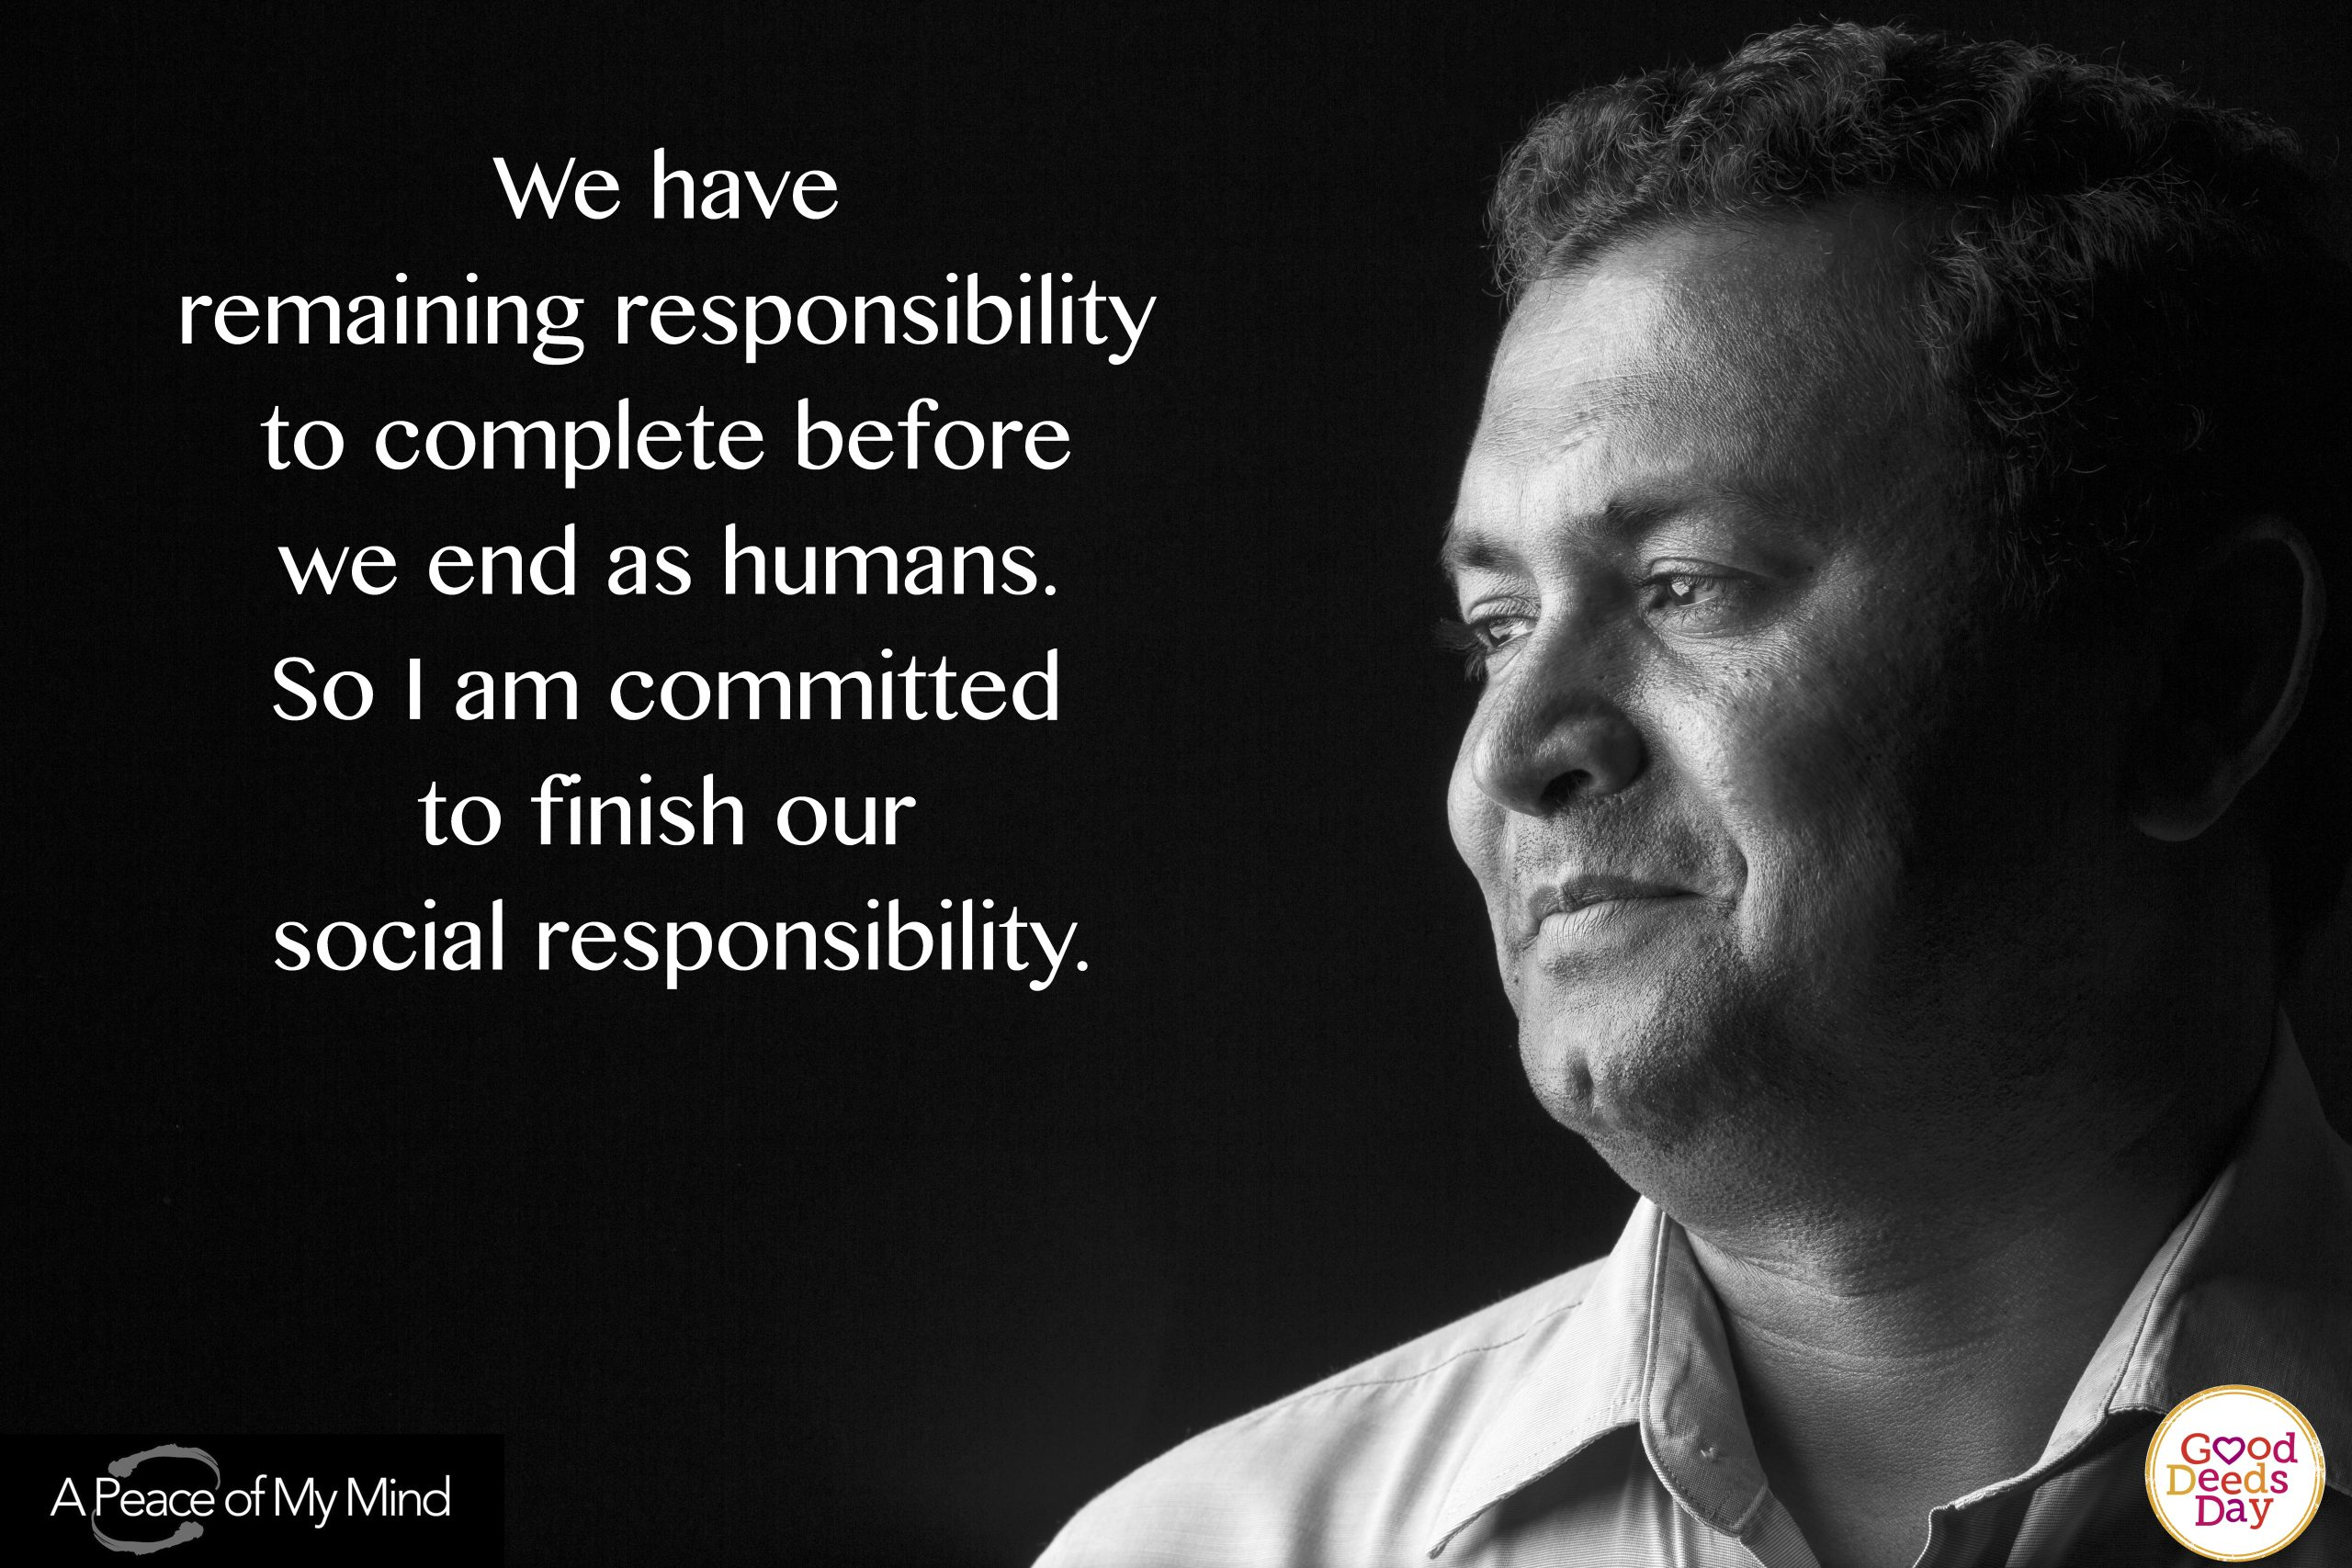 We have remaining responsibility to compete before we end as humans. So I am committed to finish our social responsibility.